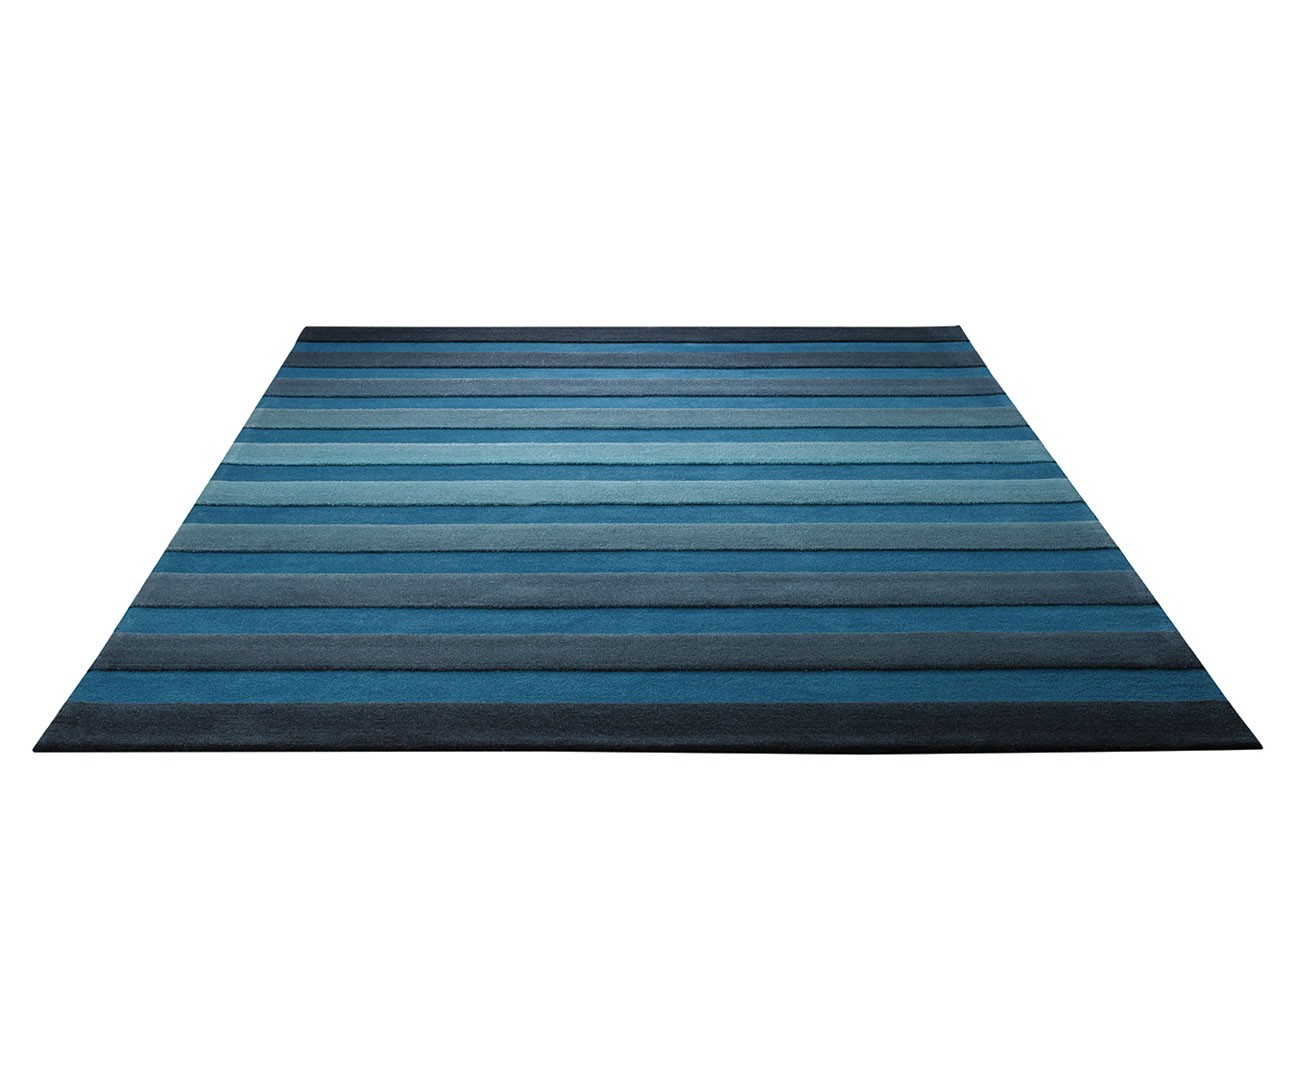 Tapis de salon bleu cross walk par esprit home - Tapis salon gris ...